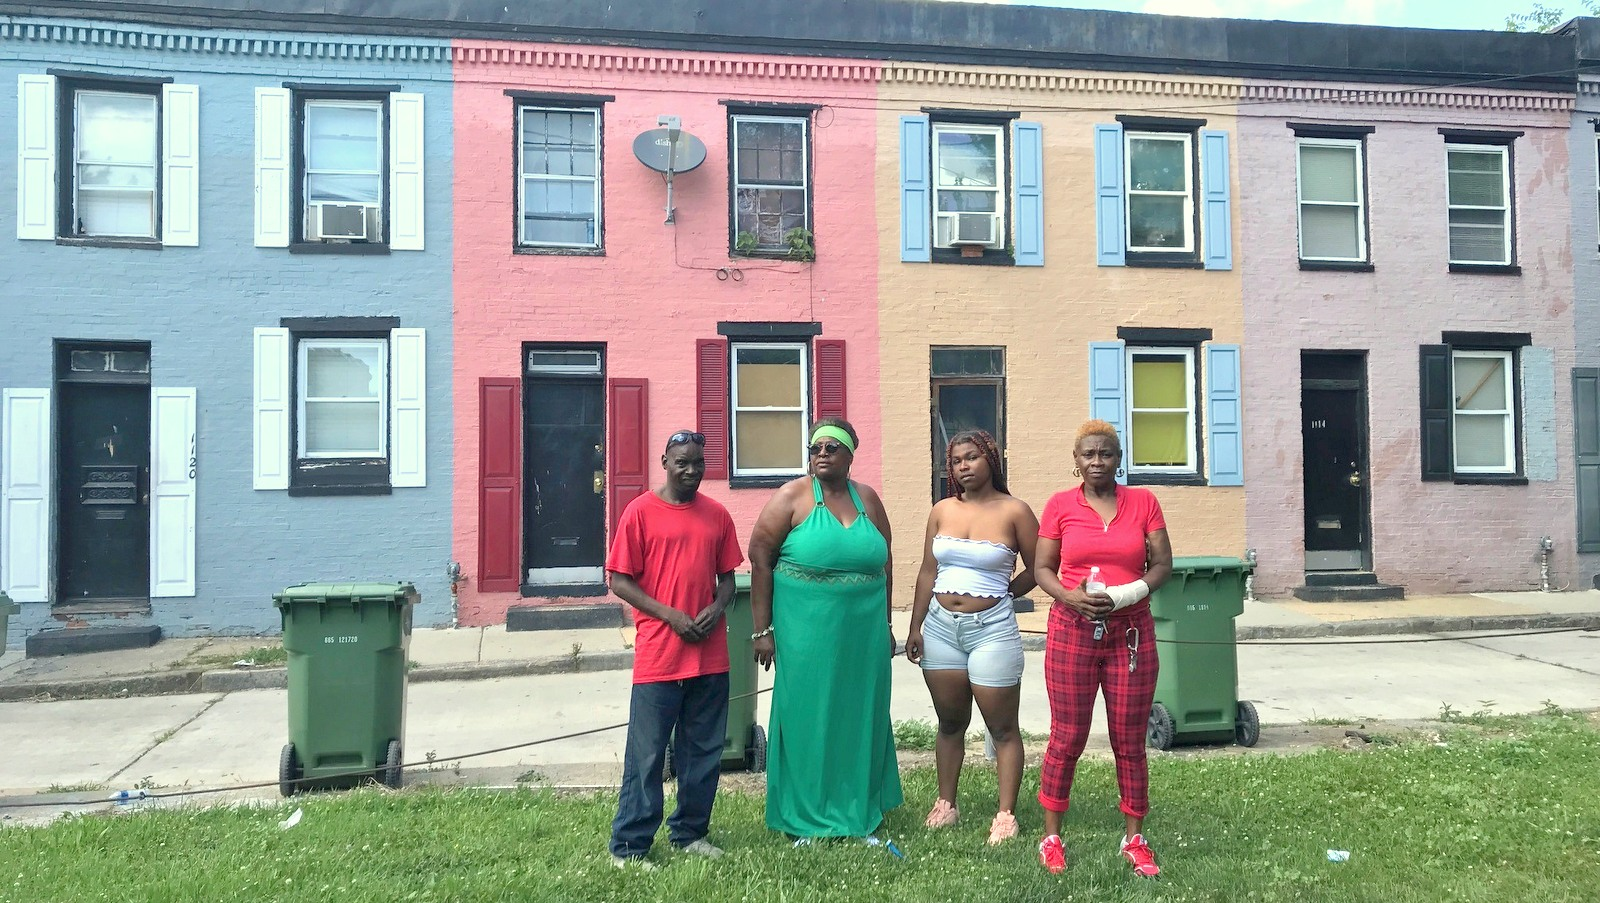 Jerome Phillips, Caroline Shoemaker, Laasia Howard and Vanessa McBride pose in front the Sarah Ann alley houses they've in for years. (Mark Reutter)